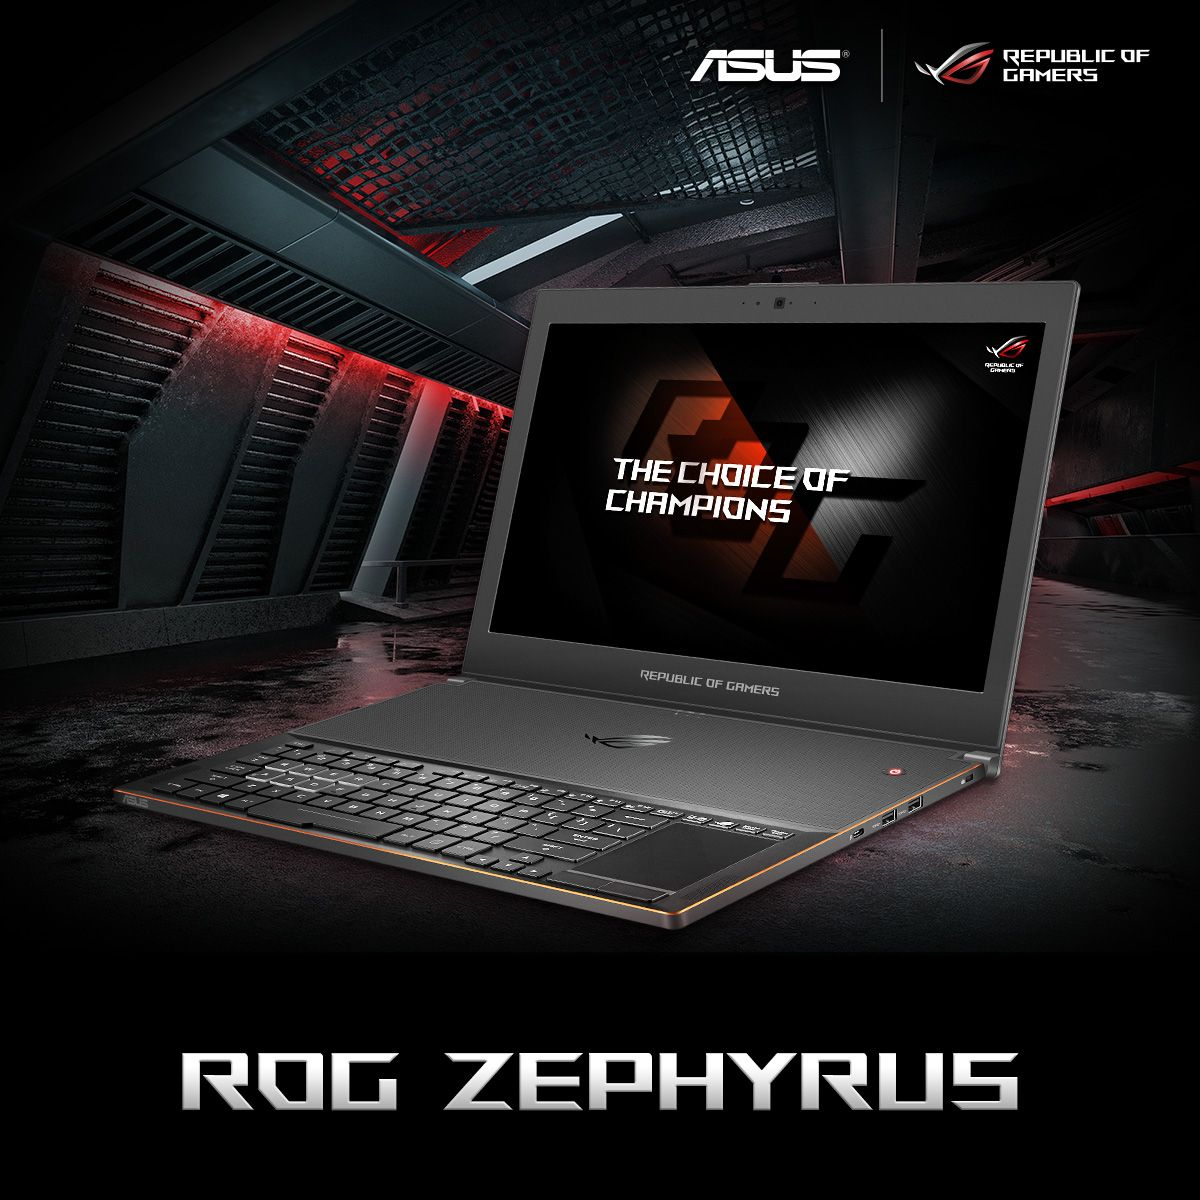 ASUS ROG Zephyrus is here! More power, a new design and next level